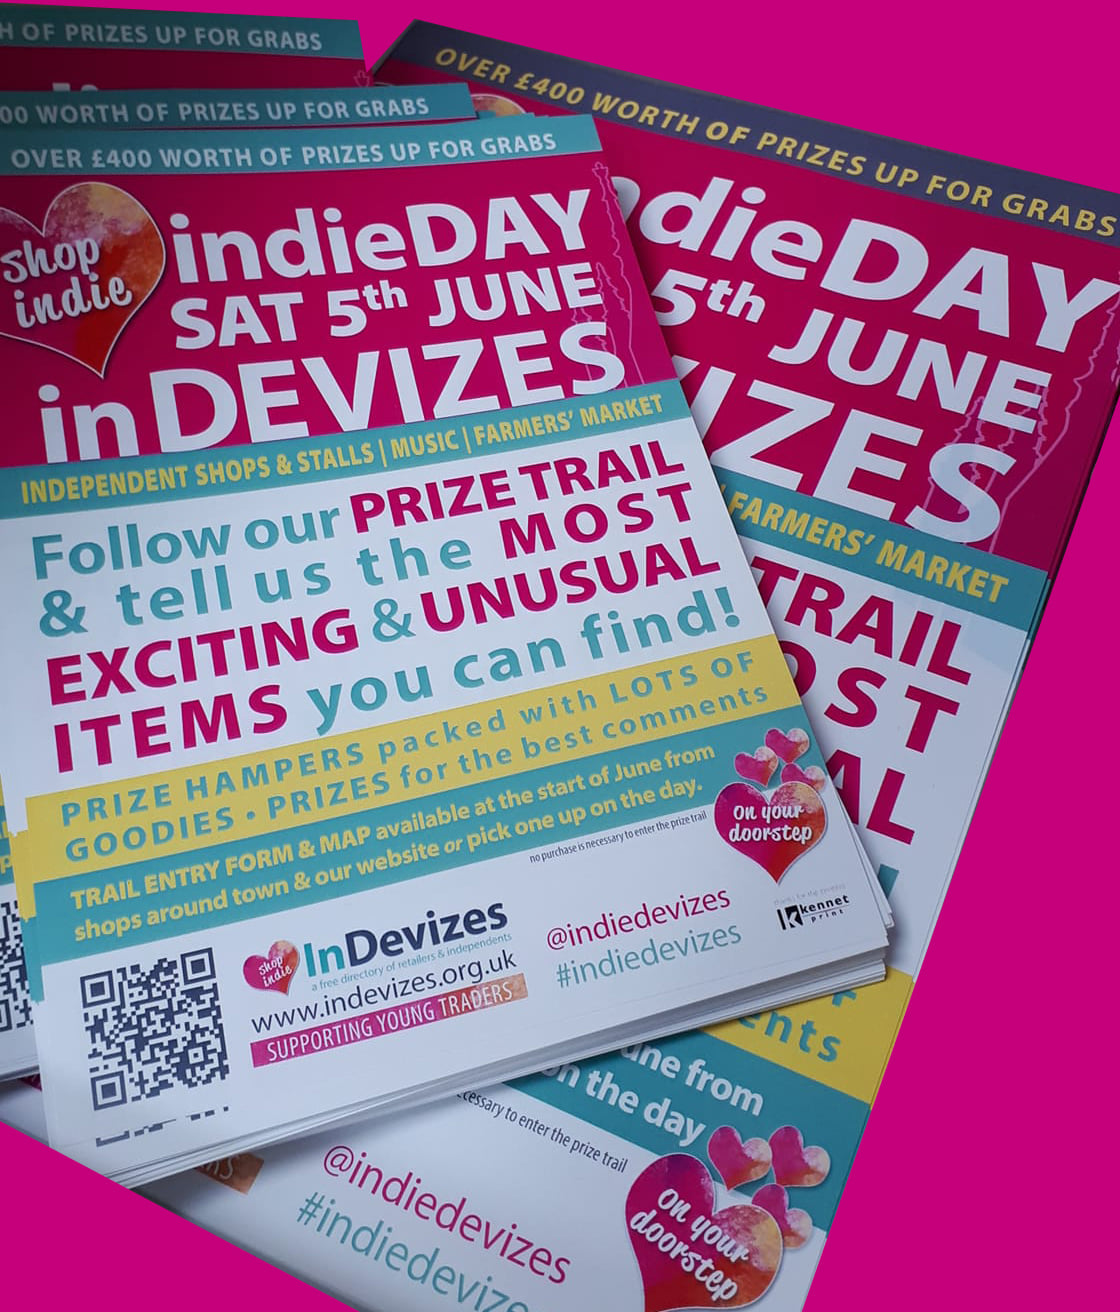 IndieDay is Back inDevizes